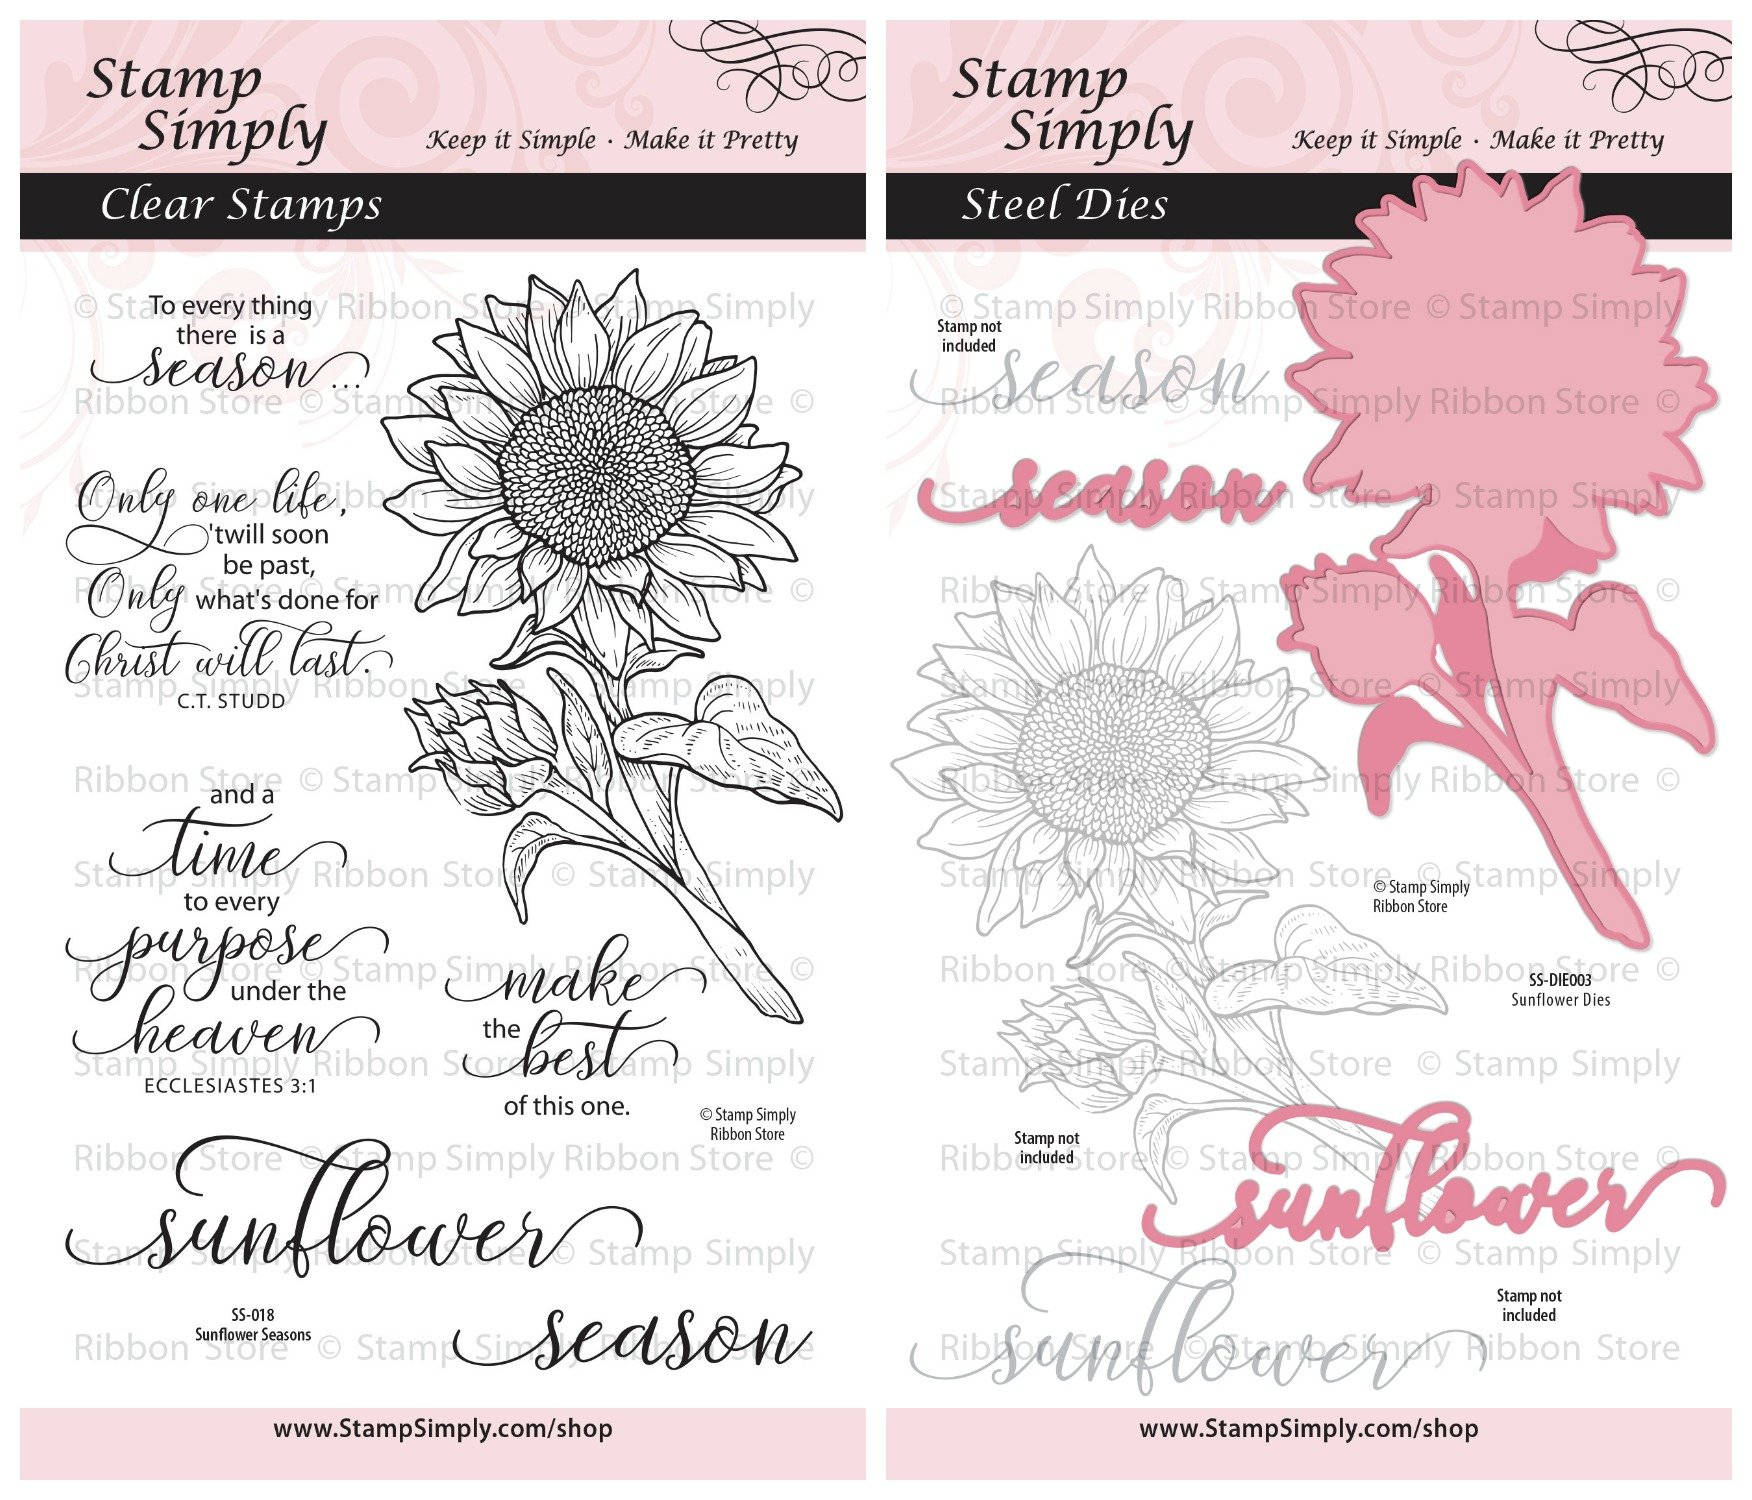 Stamp Simply Clear Stamps Sunflower Season Garden Flower and Die Christian Religious (2-Pack) 4x6 Inch Sheets - 10 Pieces